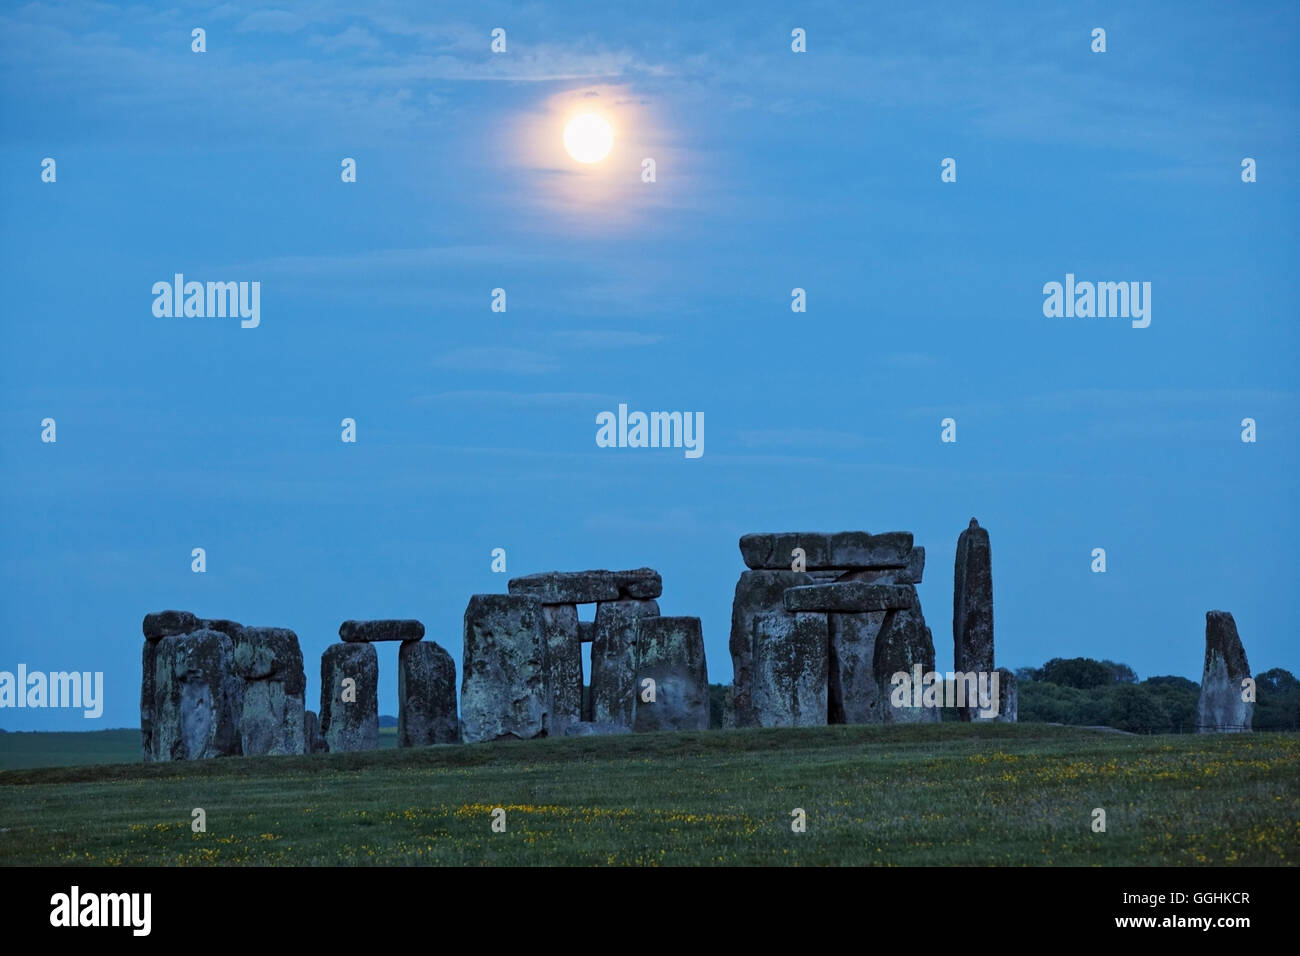 Stonehenge in the moonlight, Amesbury, Wiltshire, England, Great Britain - Stock Image